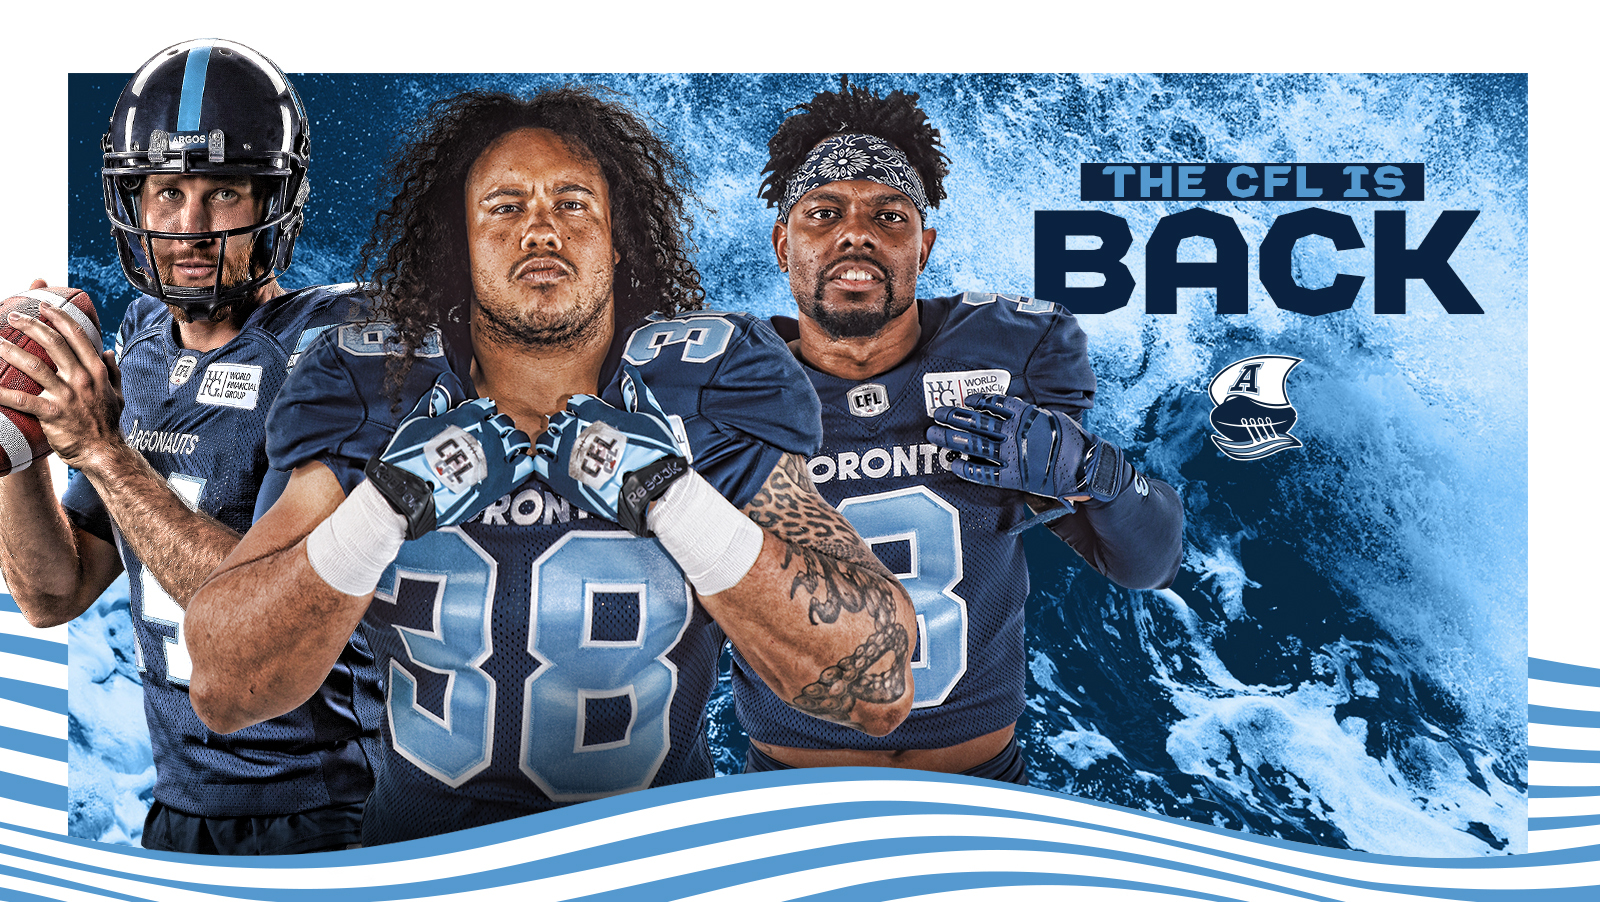 The CFL is Back!